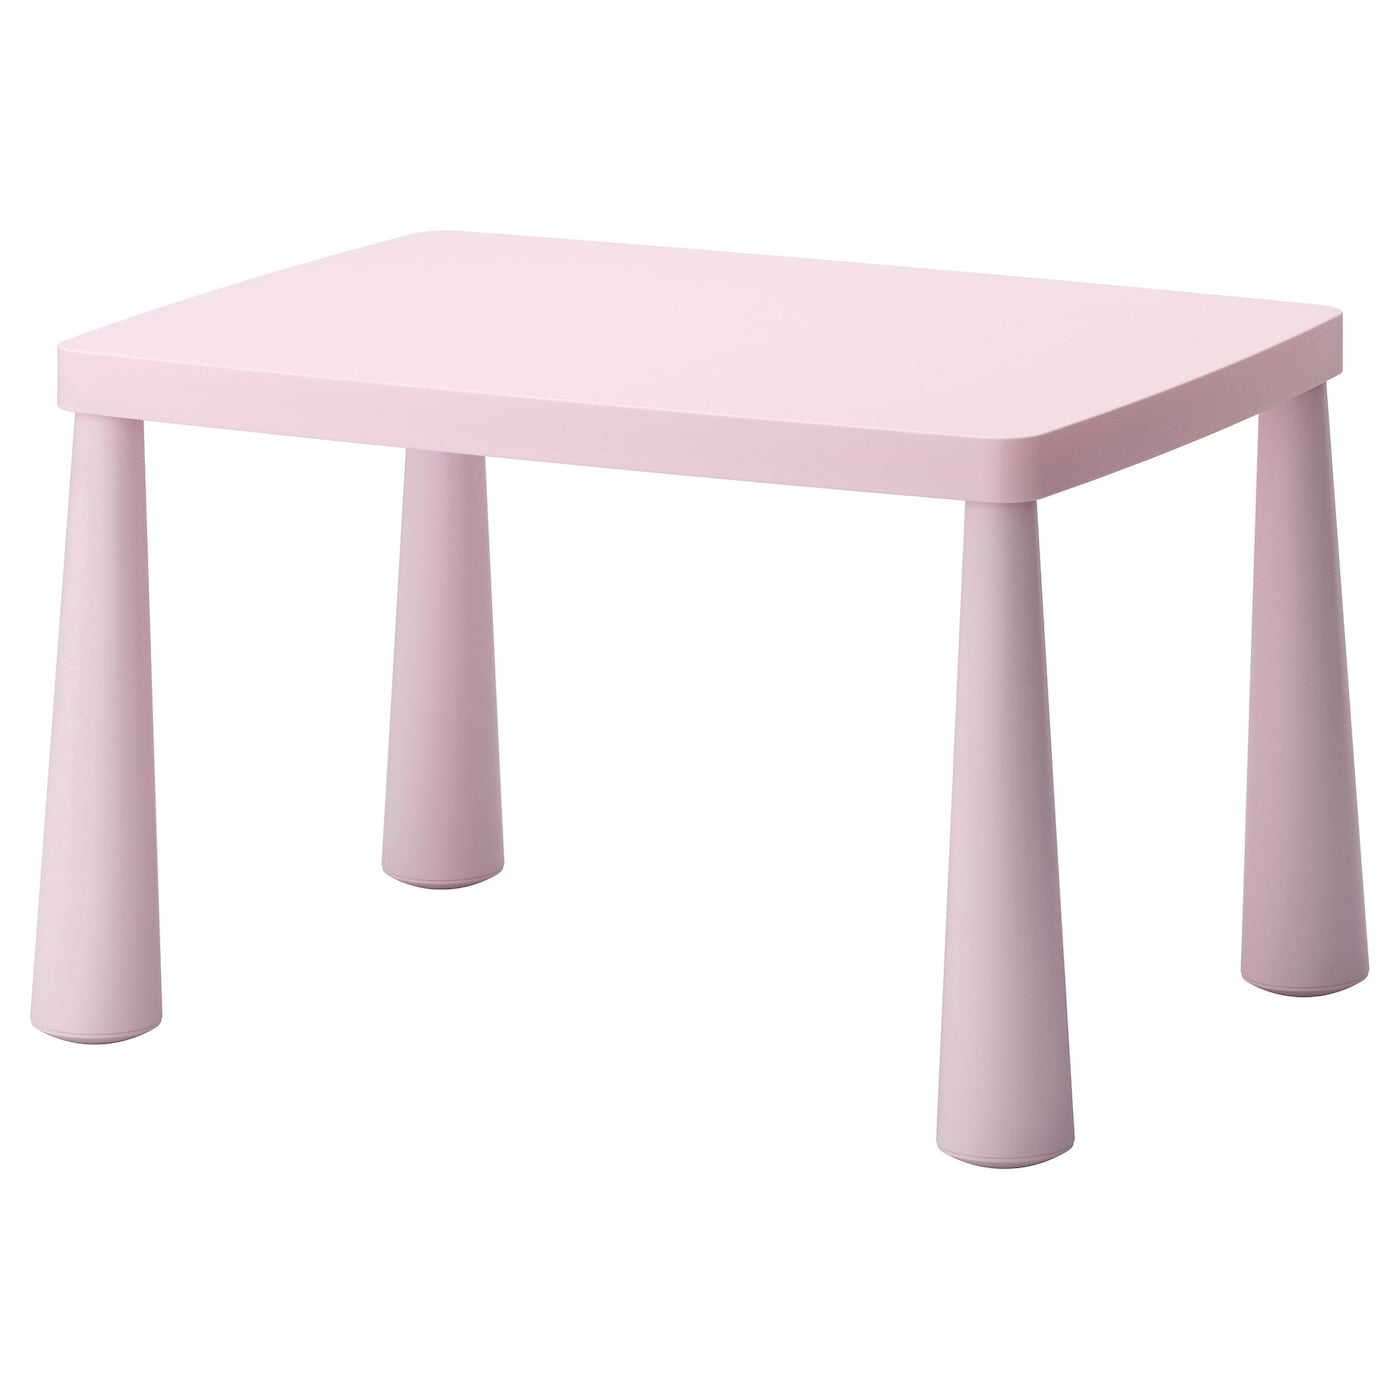 mammut children 39 s table in outdoor light pink 77x55 cm ikea. Black Bedroom Furniture Sets. Home Design Ideas